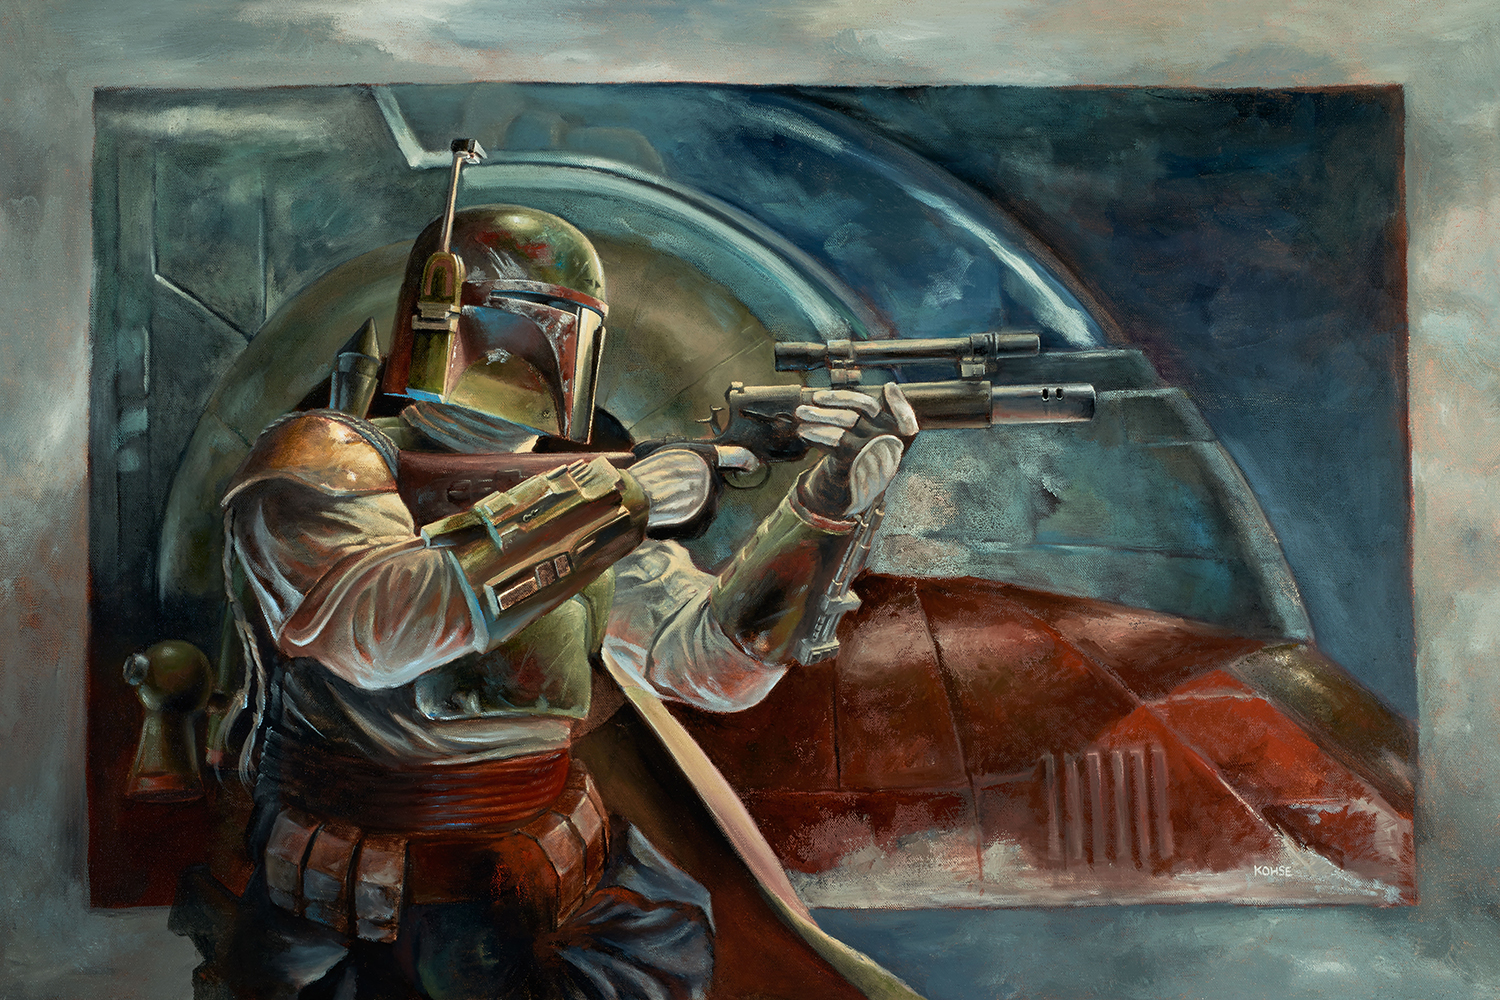 Boba Fett with Slave One by Lee Kohse